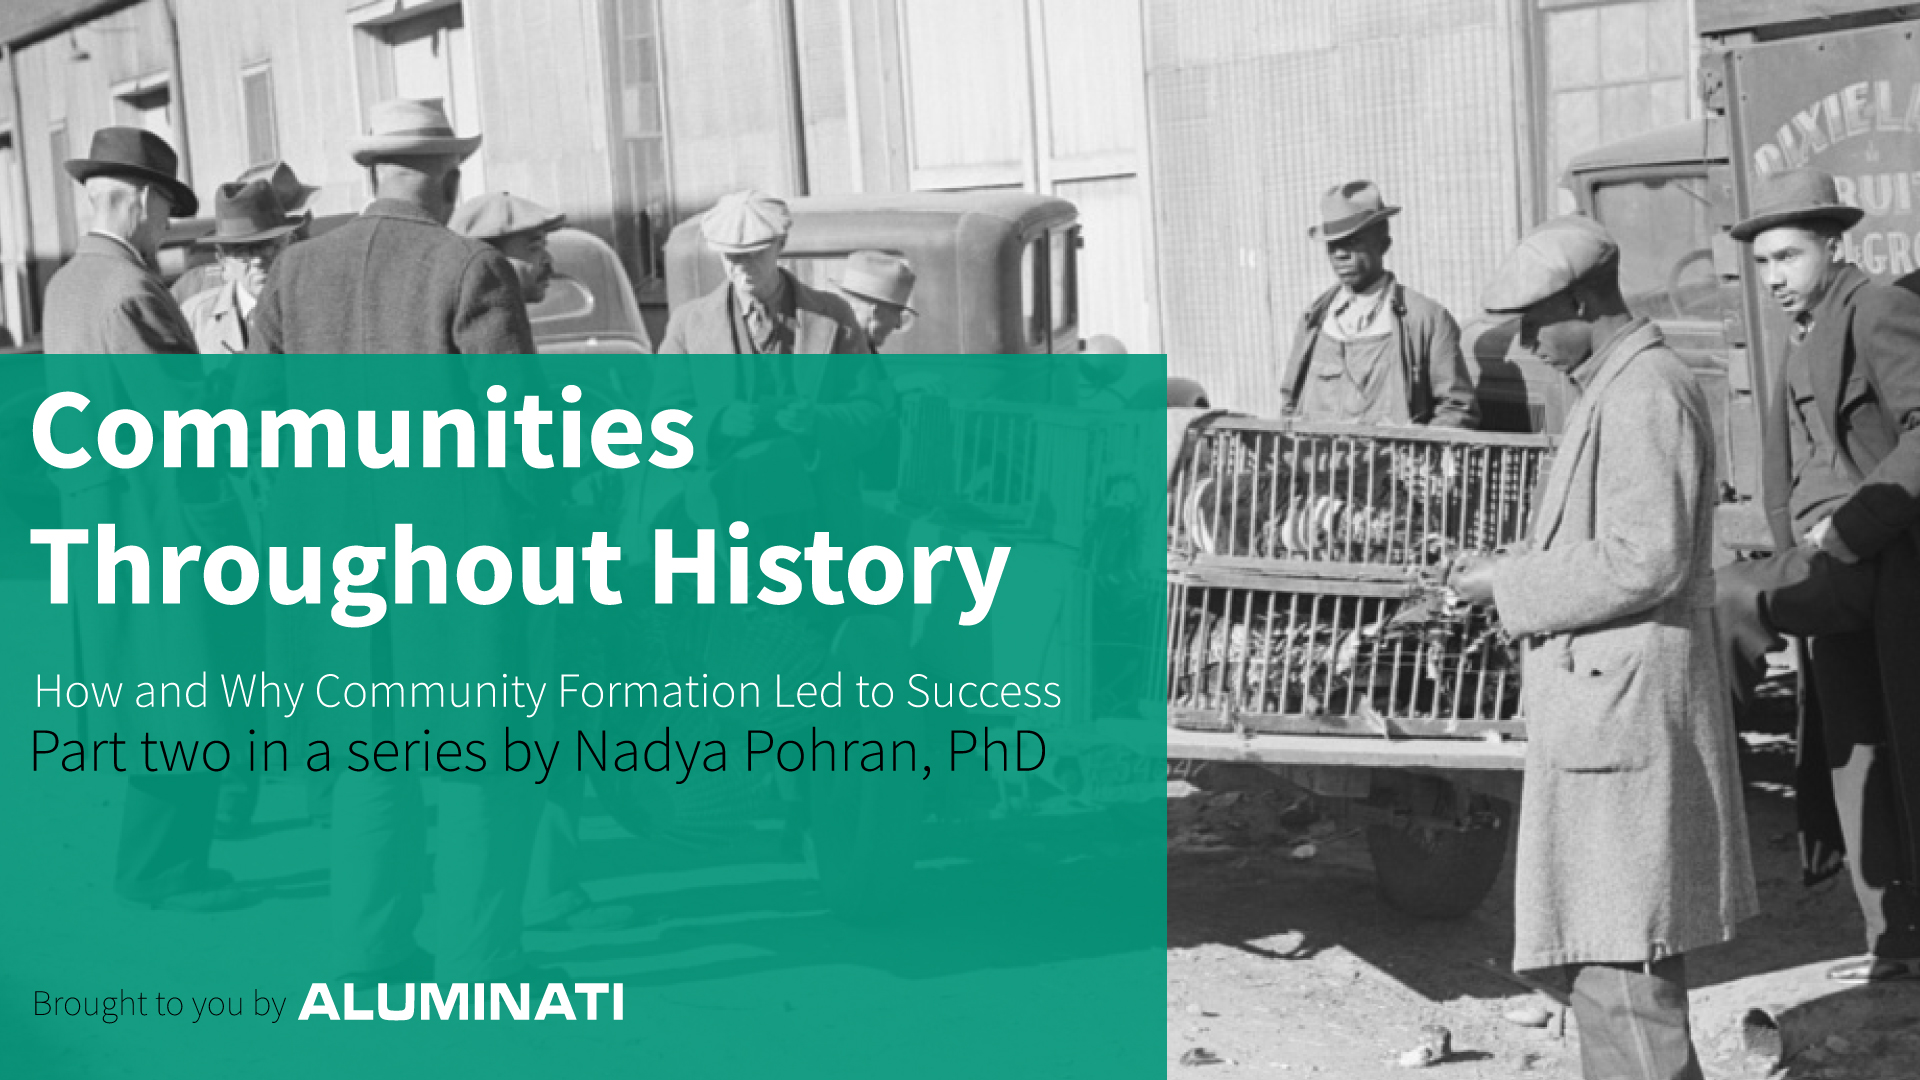 Communities Throughout History: How and Why Community Formation Led to Success